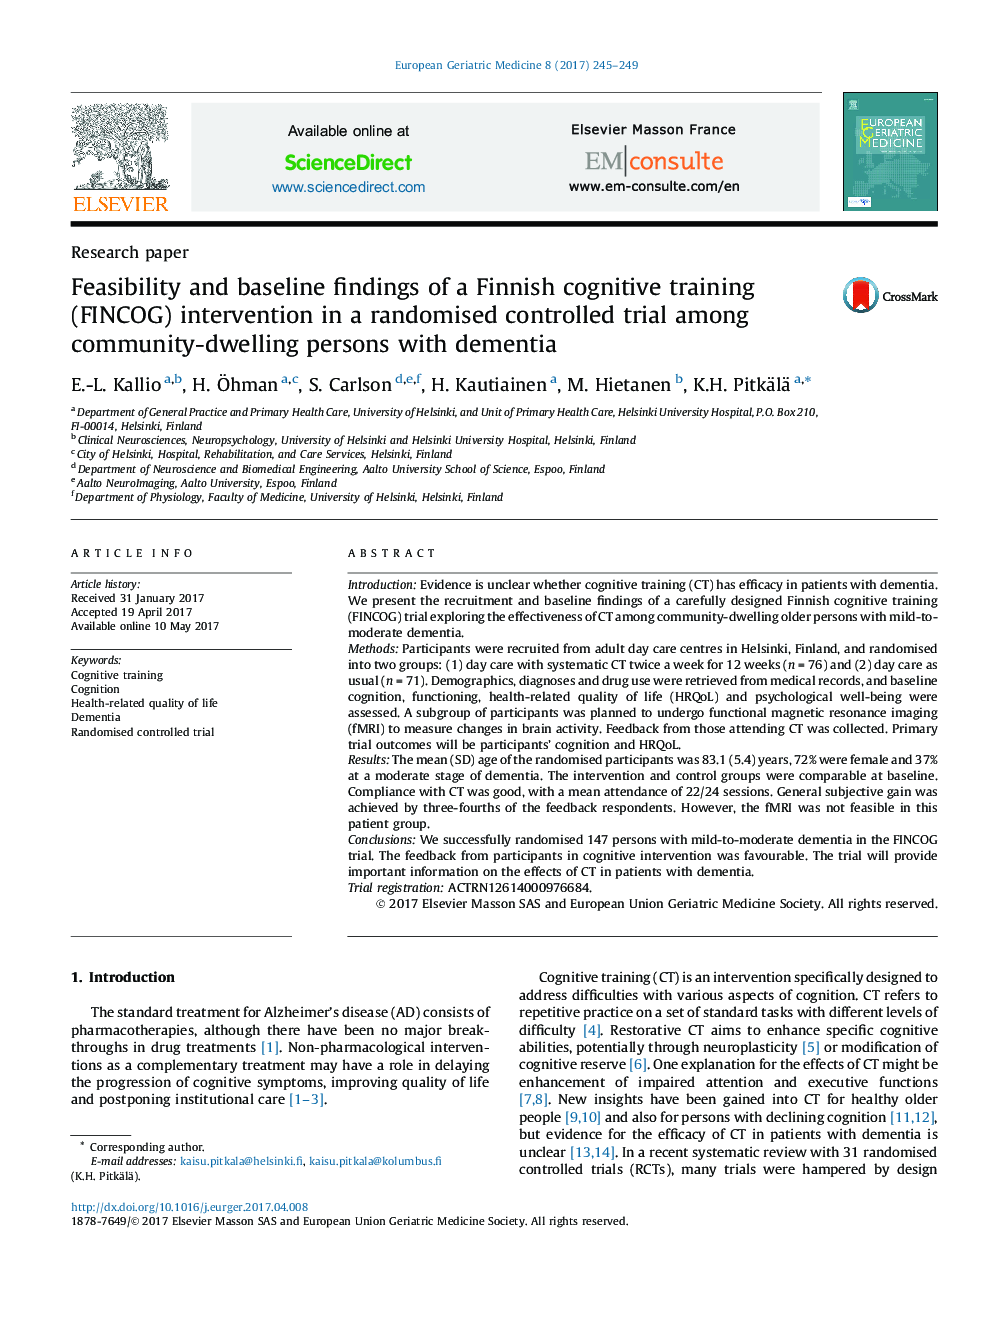 Feasibility and baseline findings of a Finnish cognitive training (FINCOG) intervention in a randomised controlled trial among community-dwelling persons with dementia